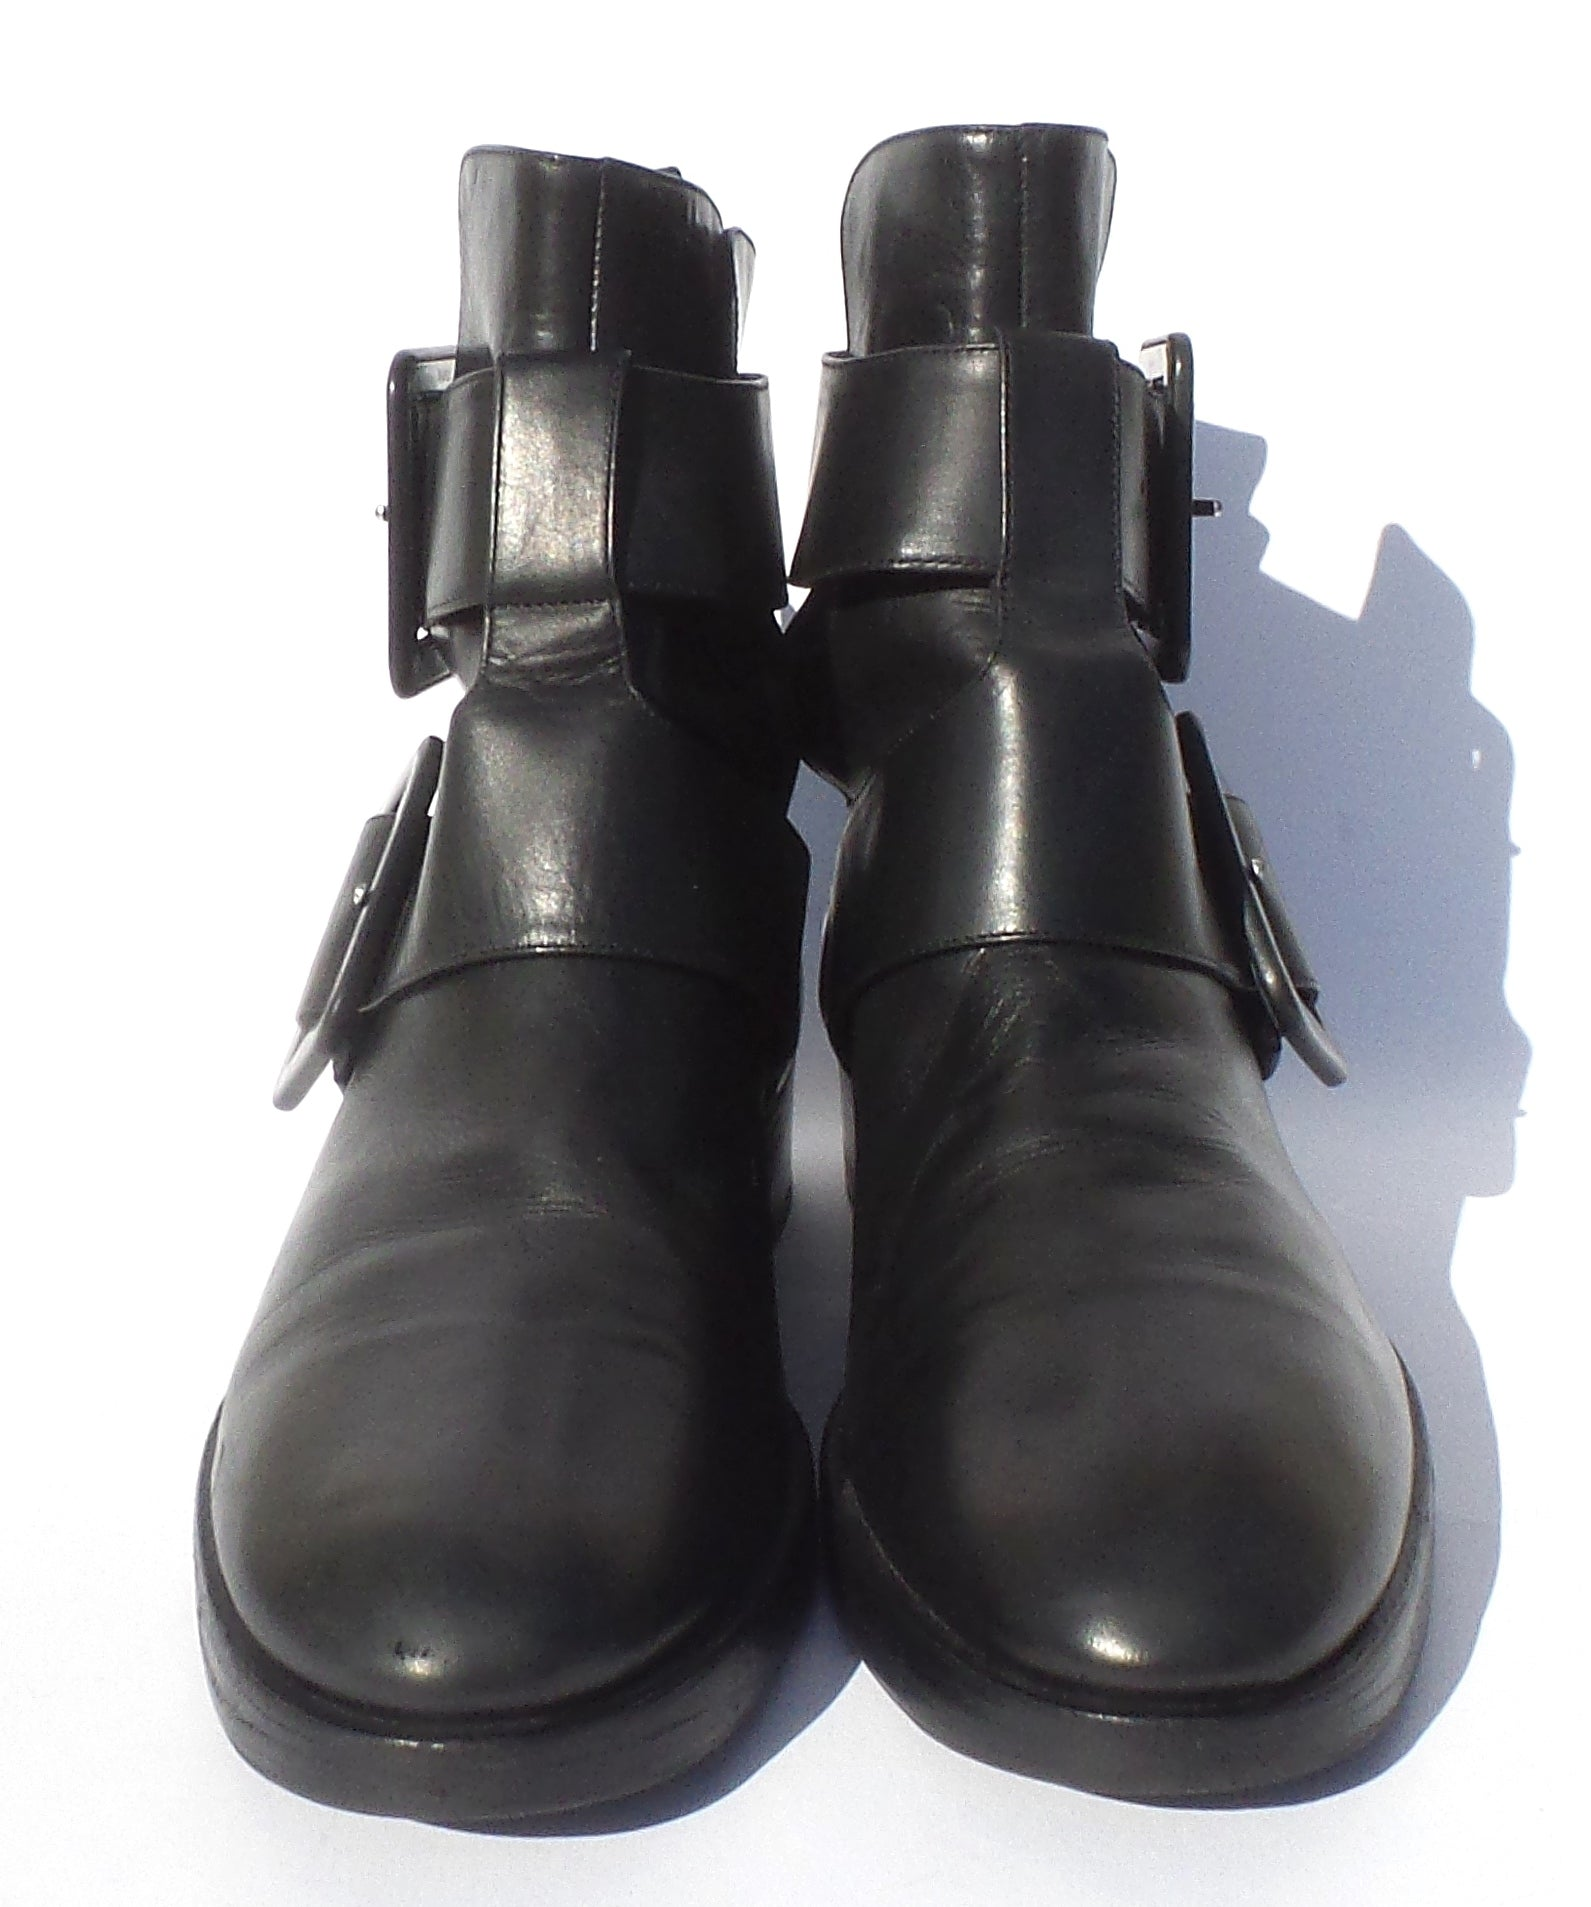 'Sold' PIERRE HARDY Black Leather Round Toe Double Buckle Low Heel Ankle Boots IT 38.5